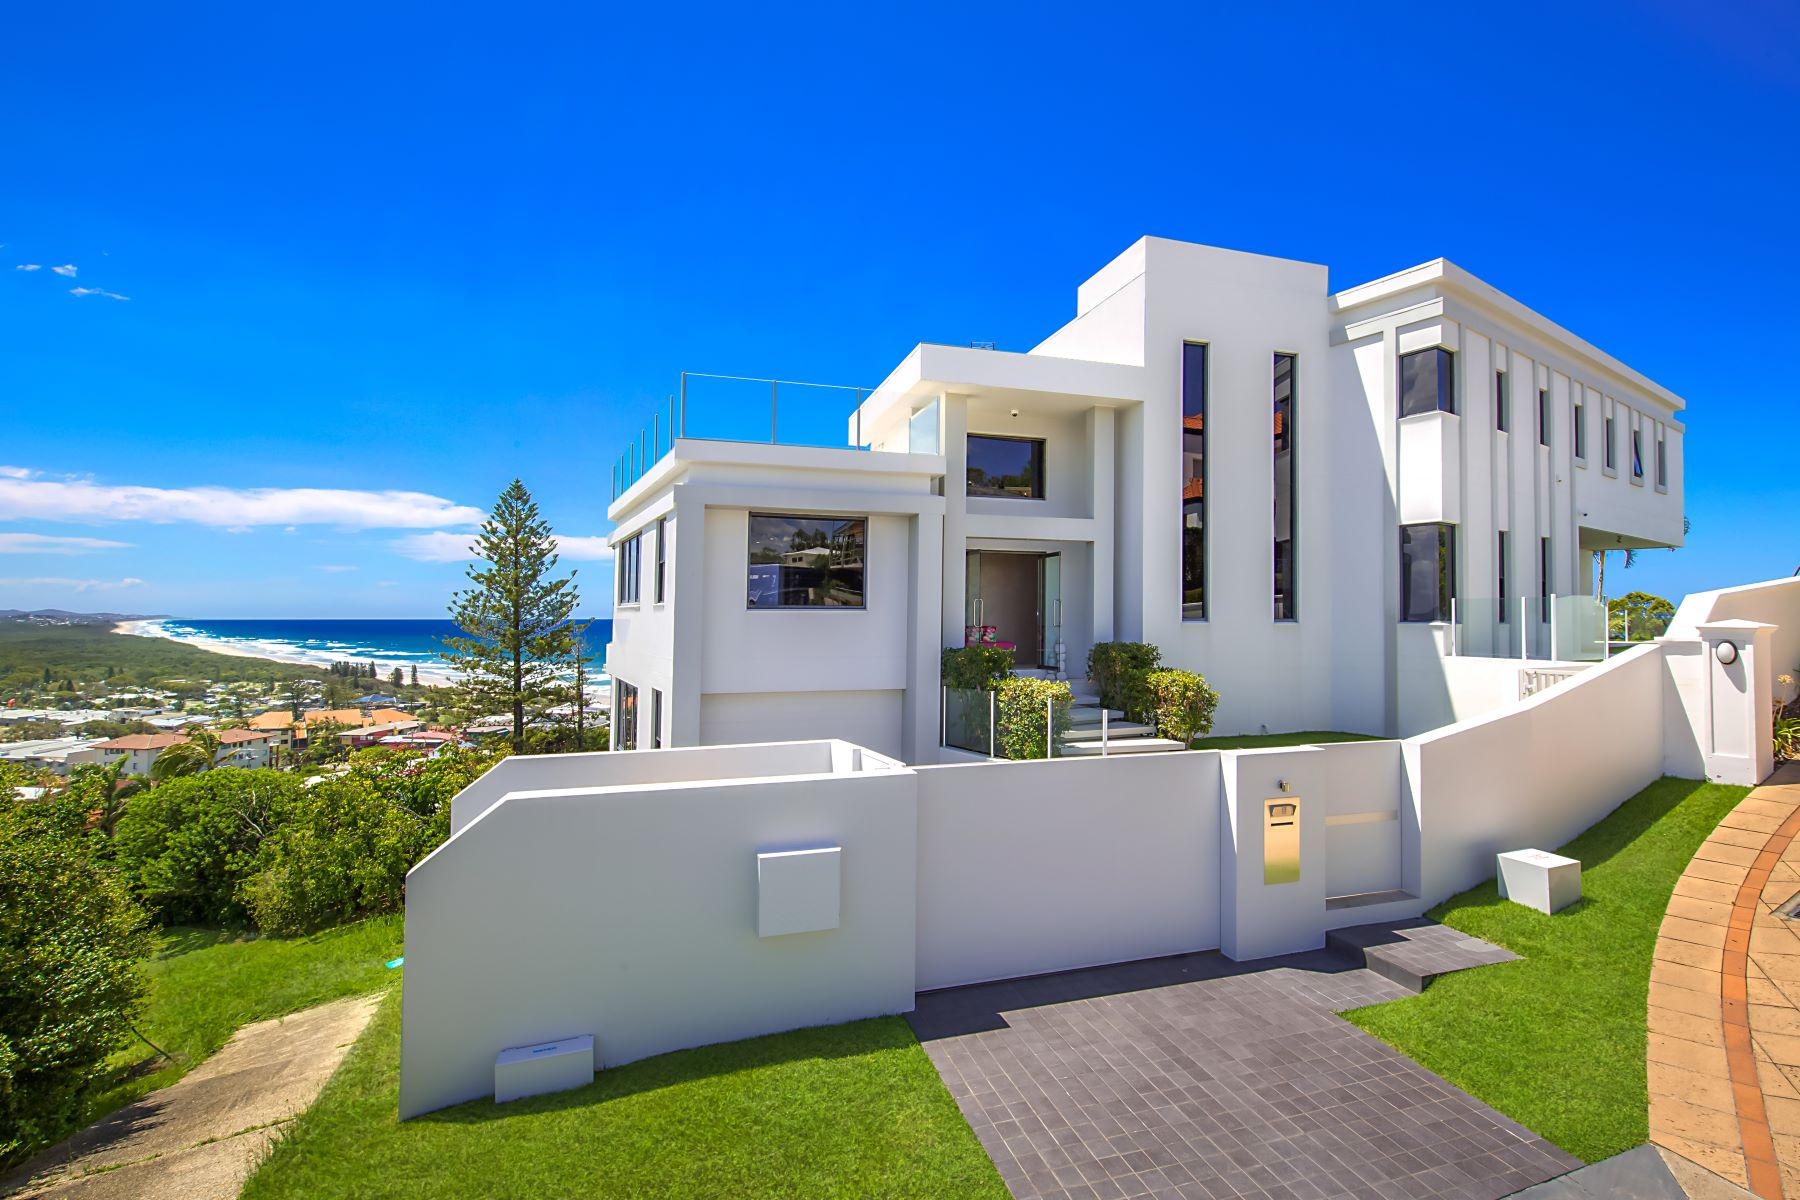 土地 為 出售 在 31 Pacific Heights Court, Coolum Beach Sunshine Coast, Queensland, 4573 澳大利亞